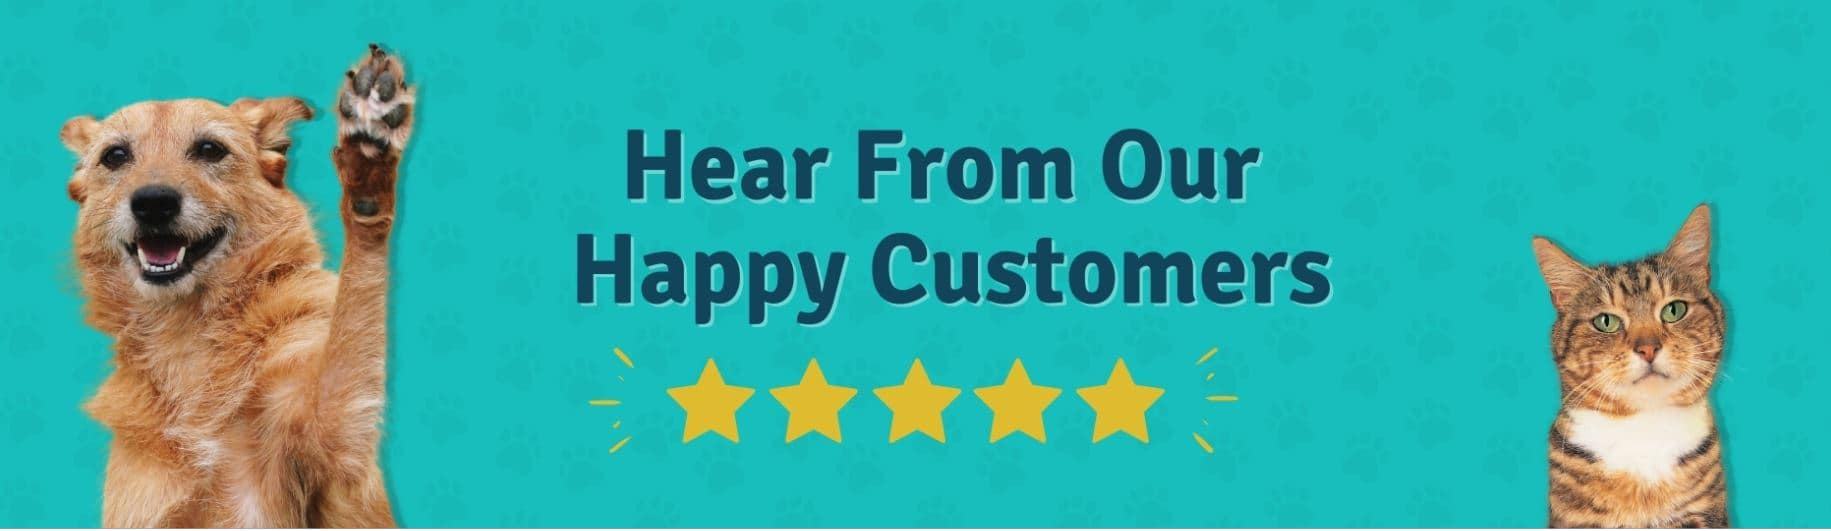 Prudent Pet receives many positive reviews from happy customers